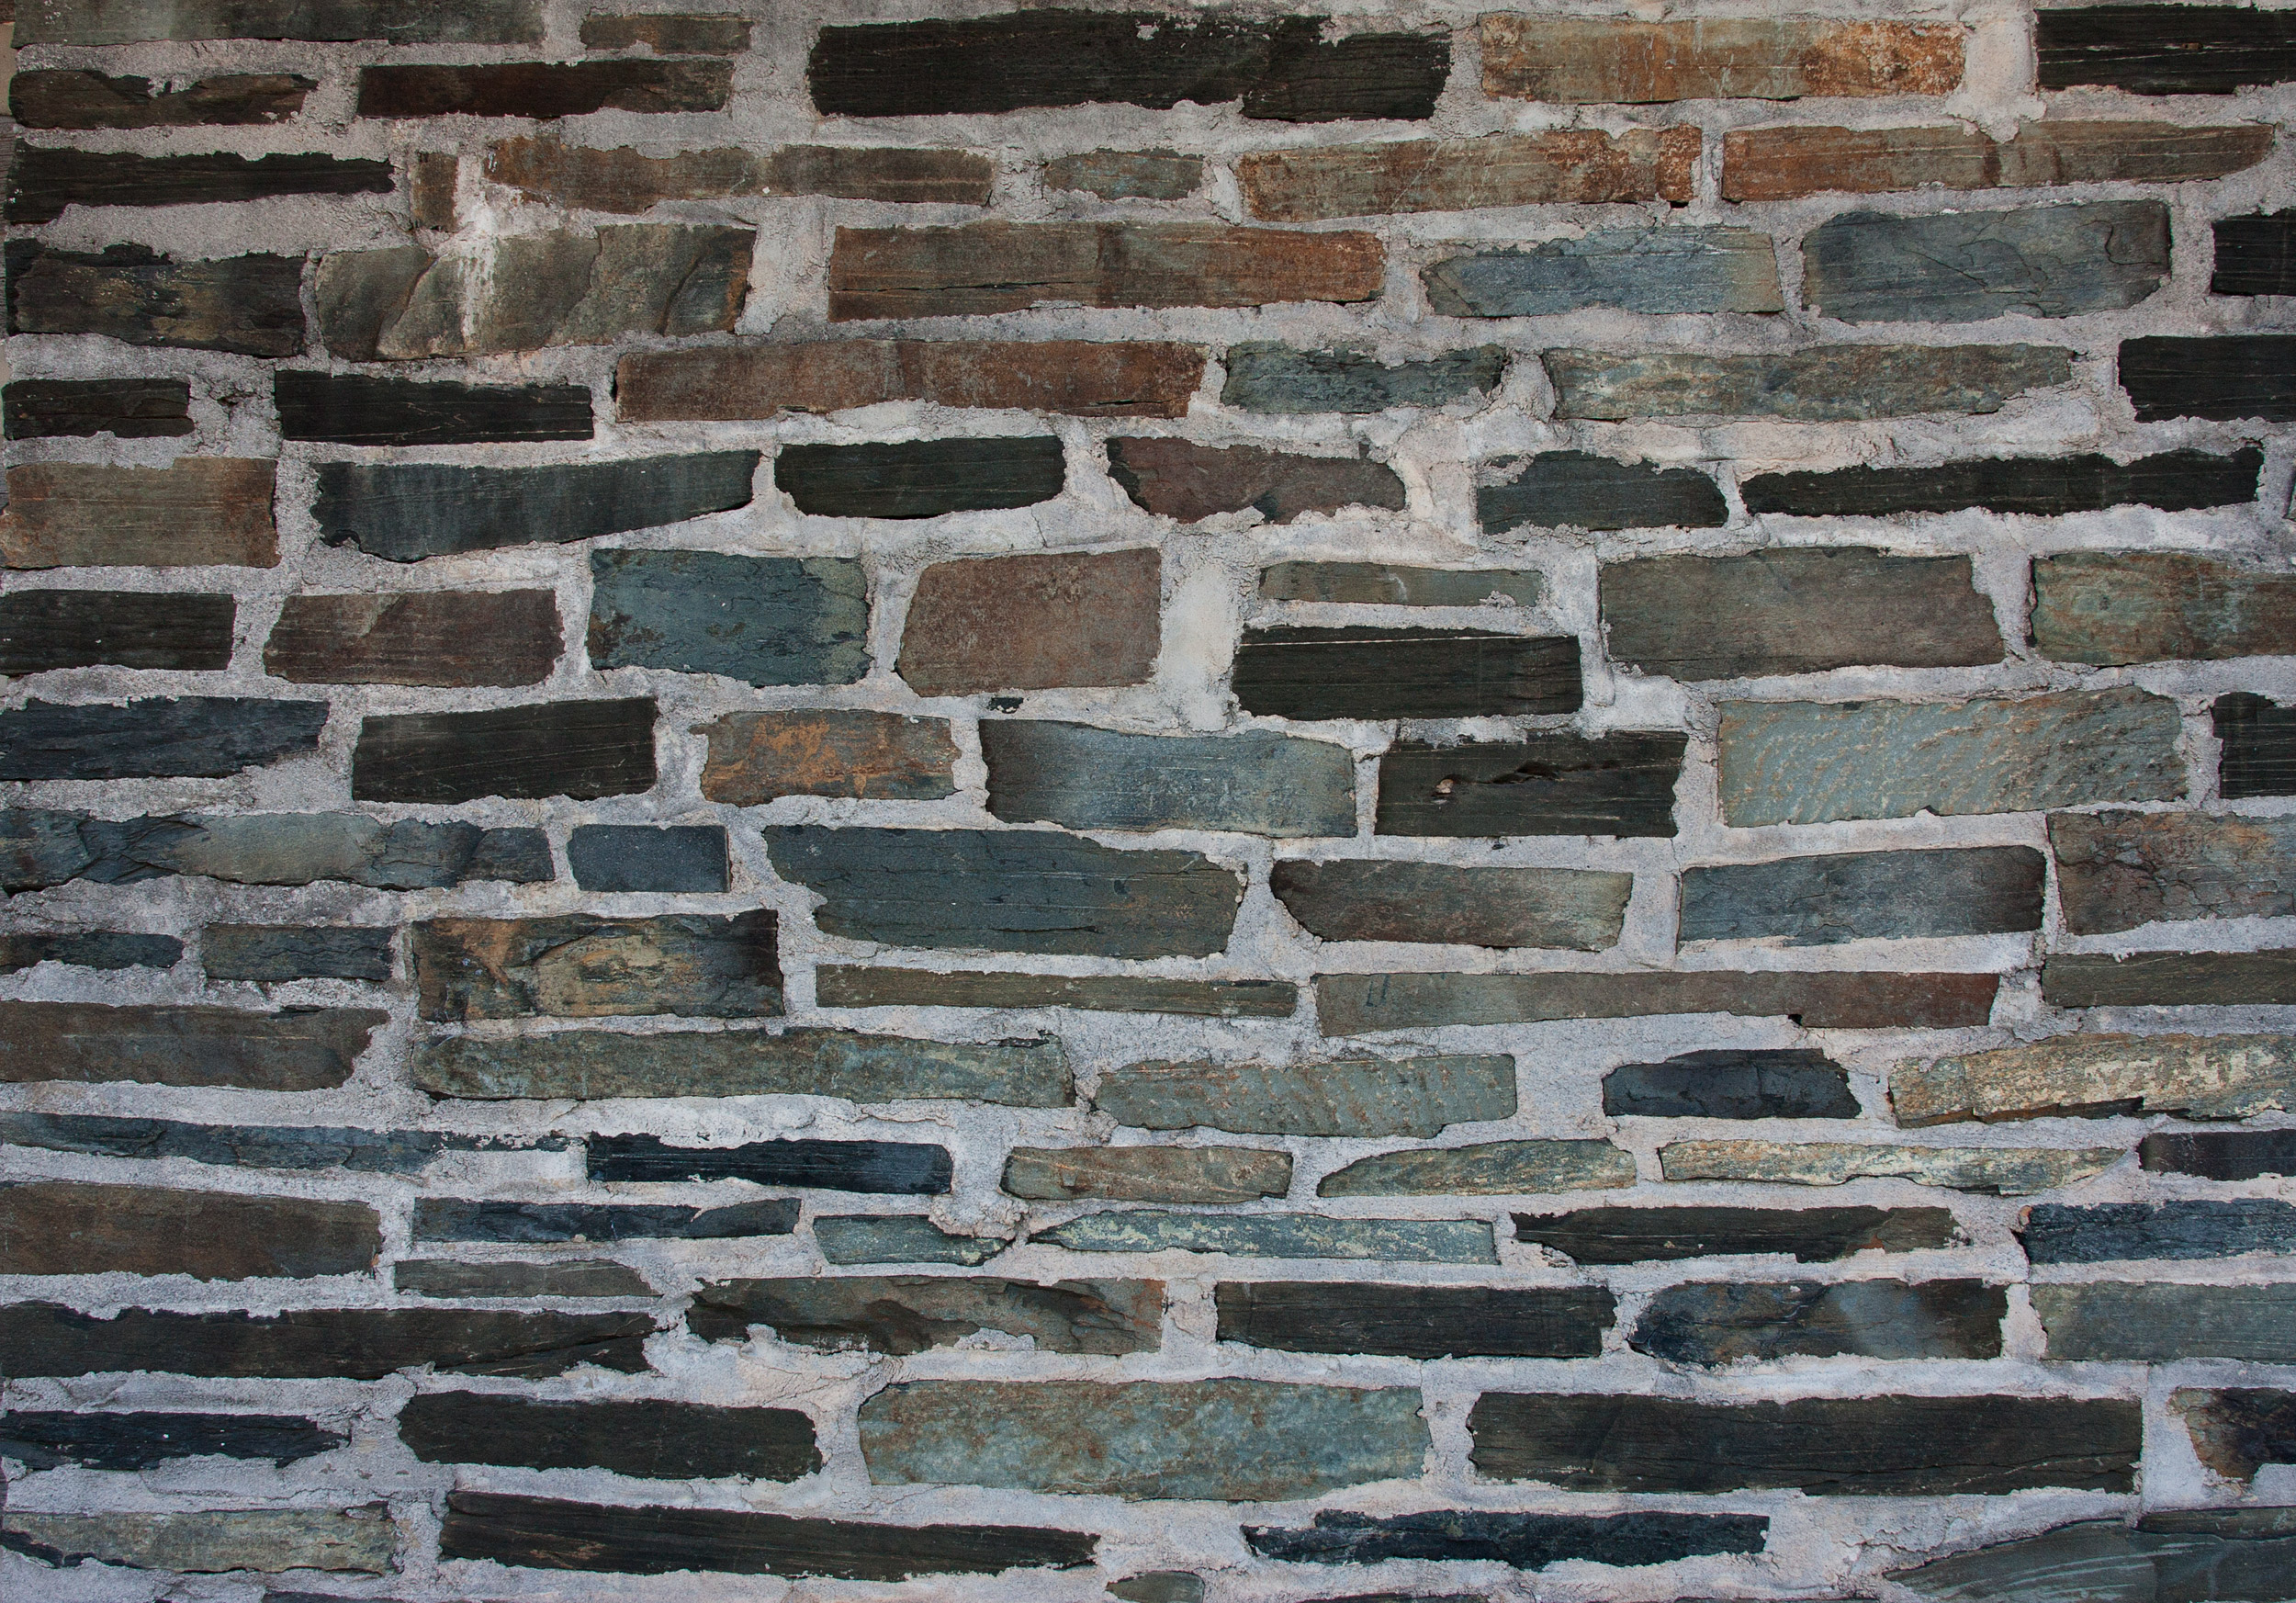 Stone wall brick wall free textures high resolution for Bricks stone design